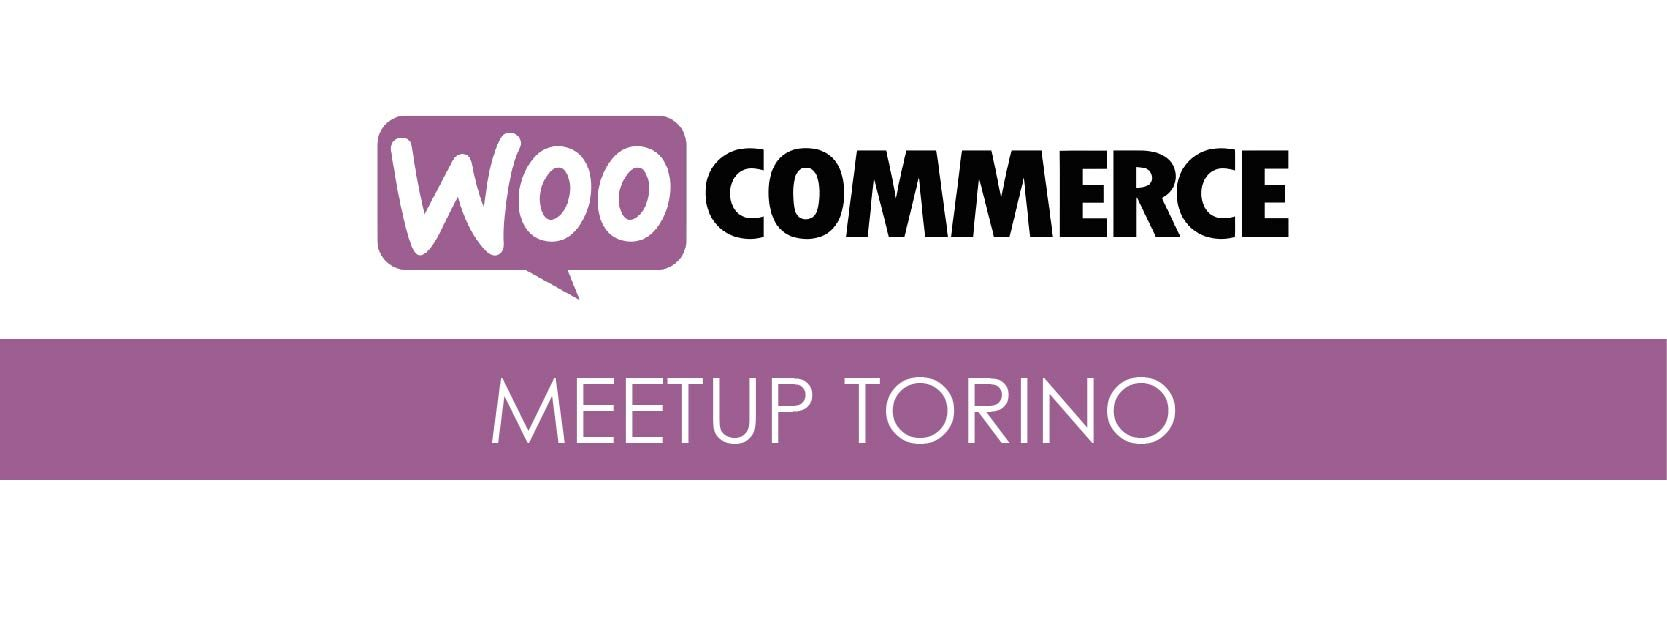 meetup-woocommerce_evento-sul-sito-sellalab